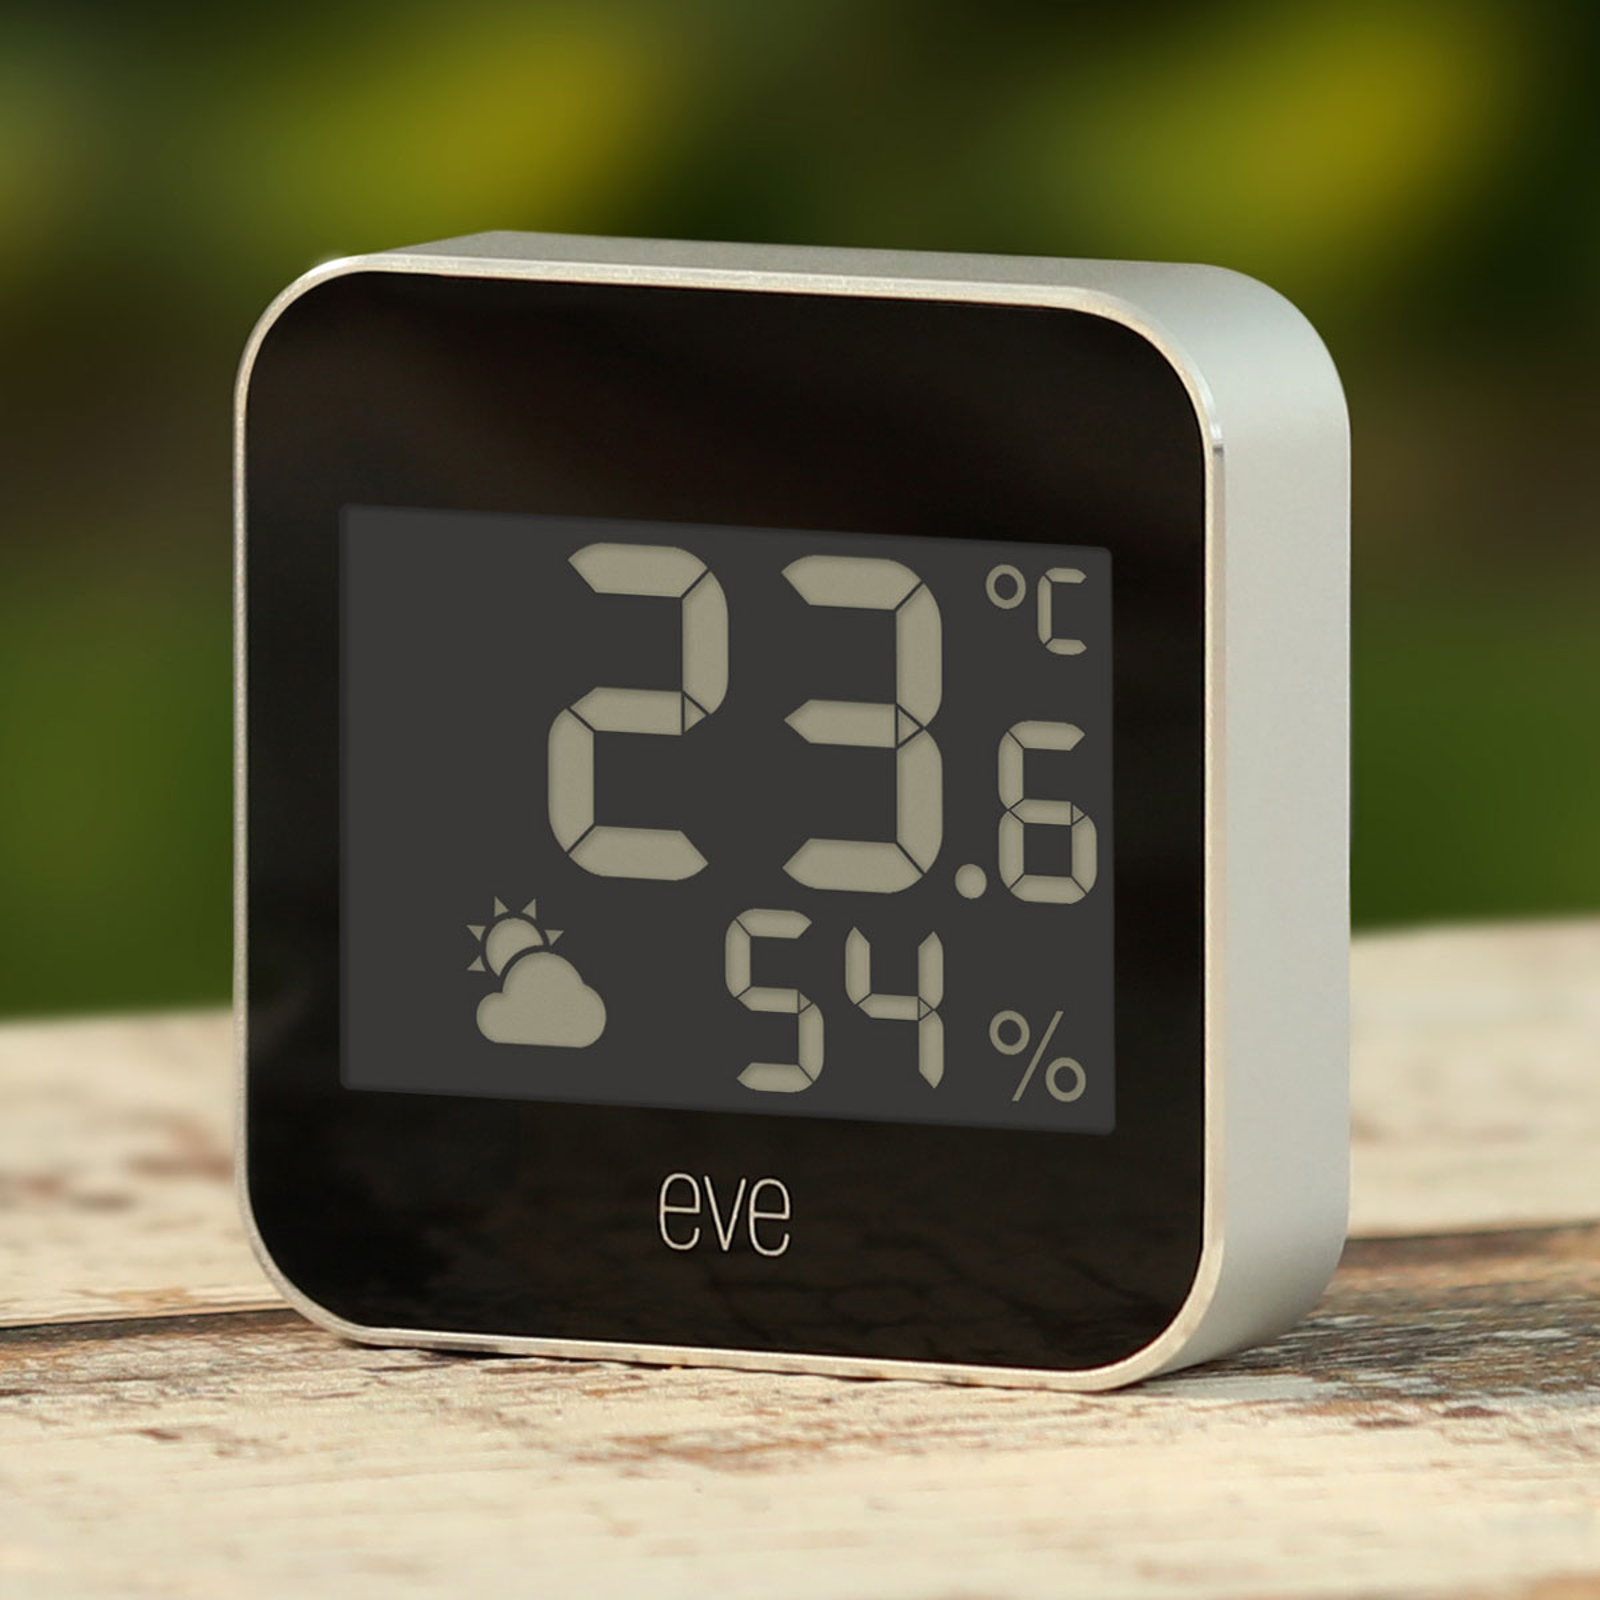 Eve Weather smart home weather station, thread_2029025_1